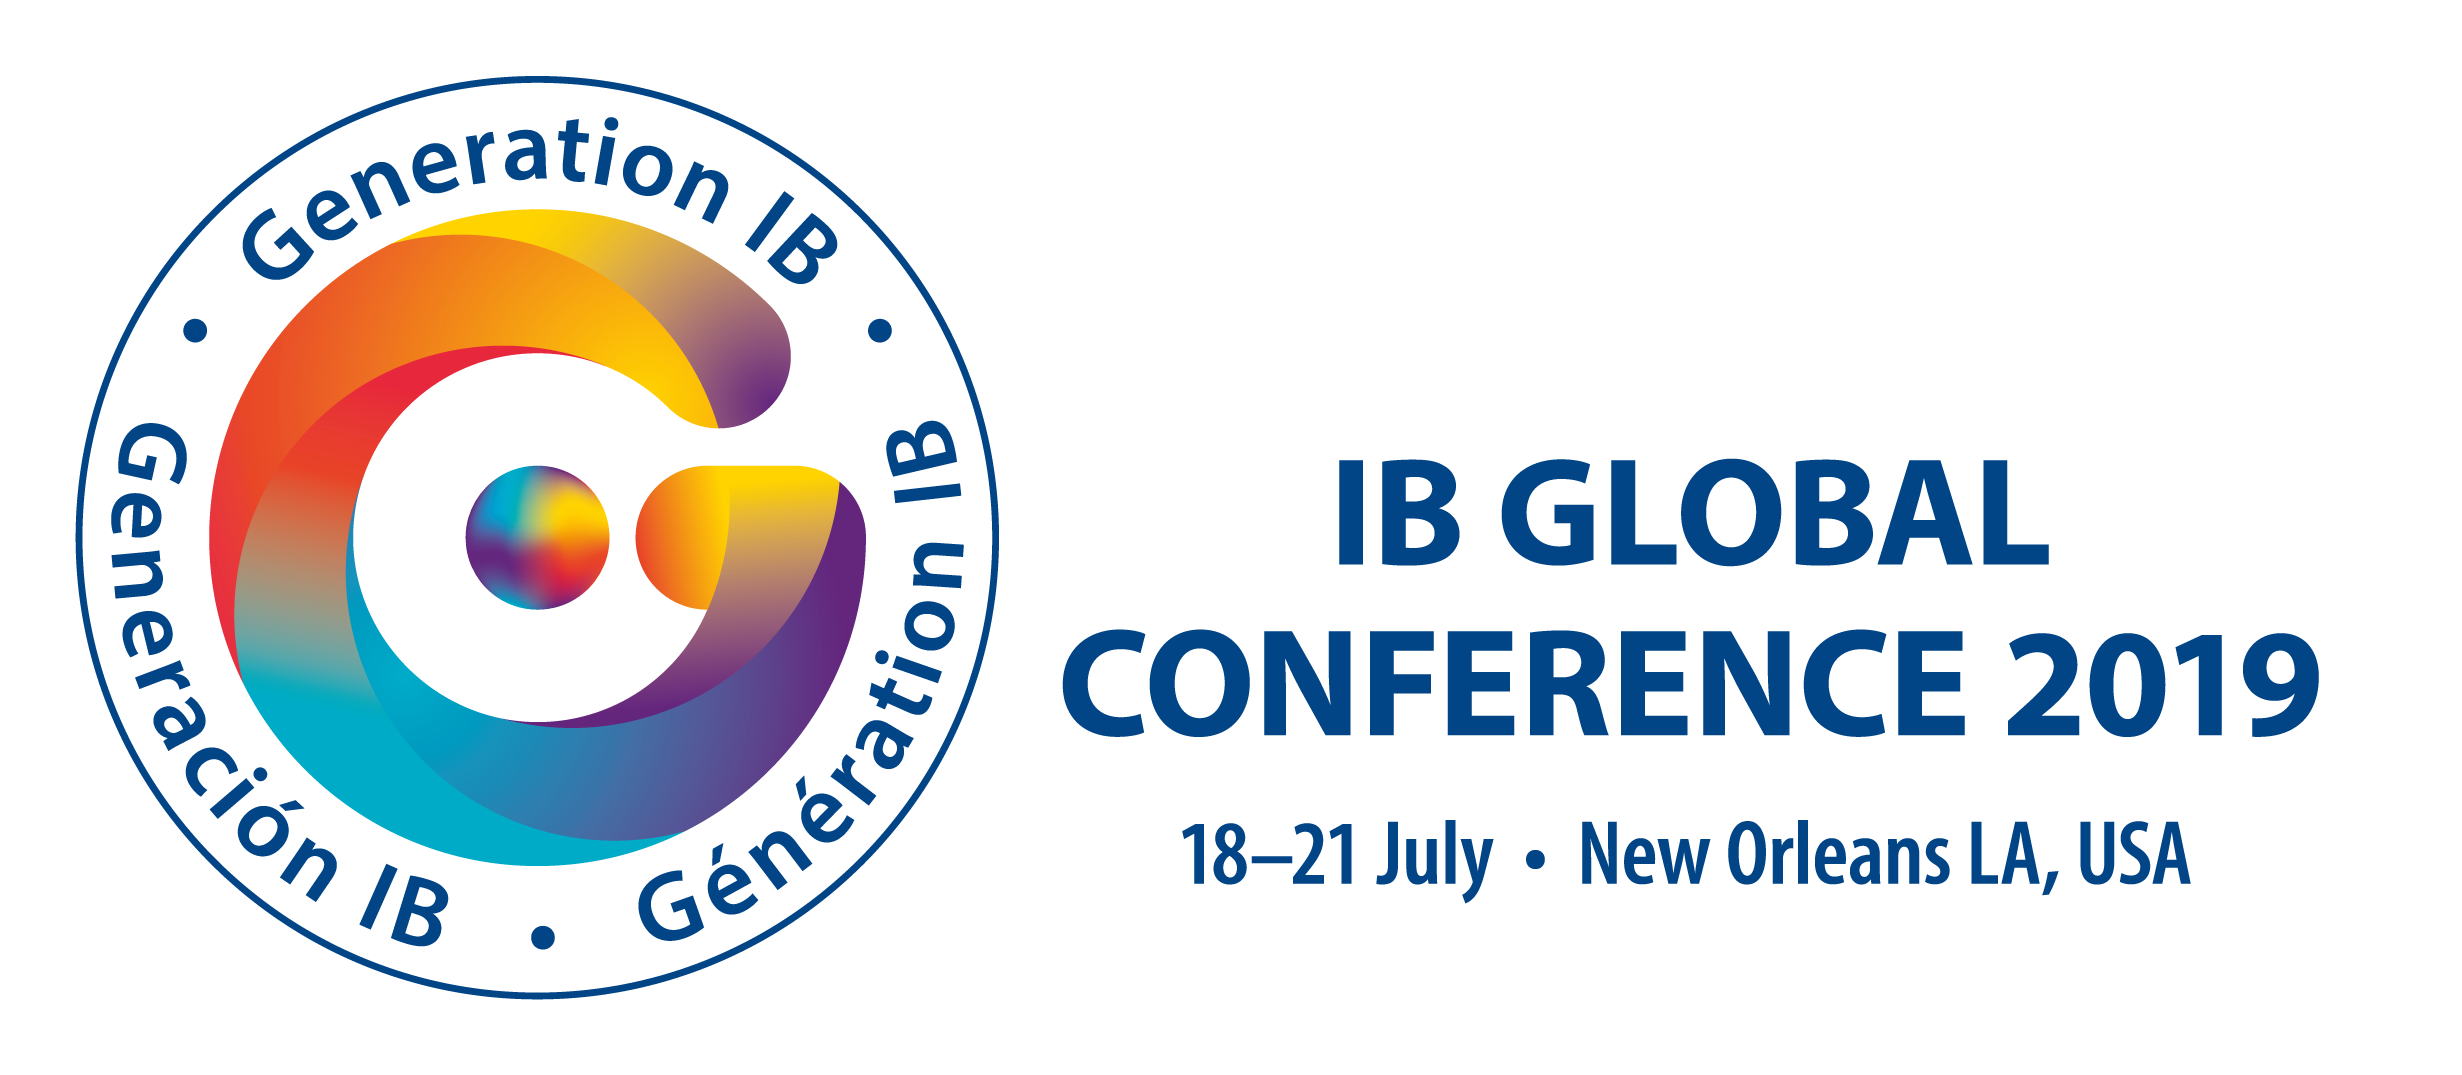 IB Global Conference 2019 - New Orleans, LA, USA